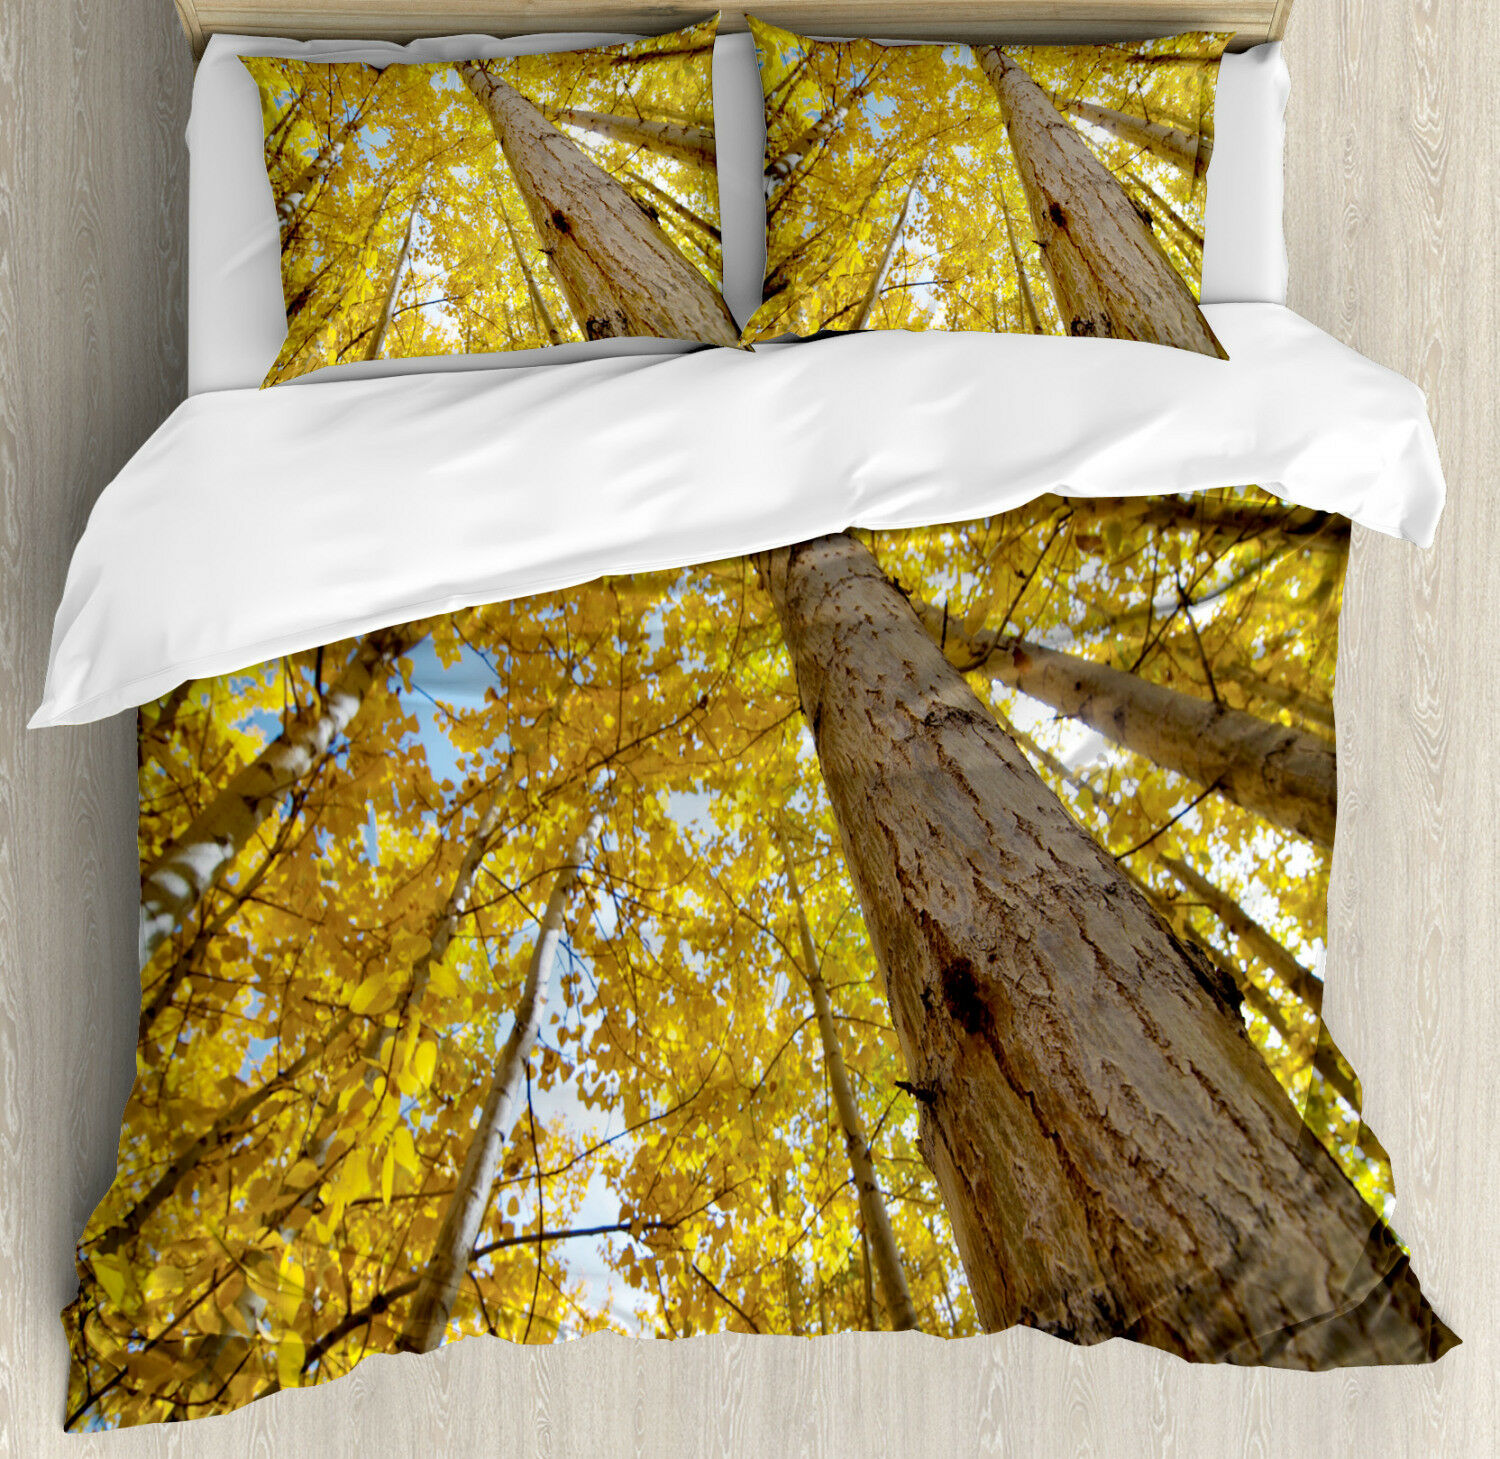 Scenery Duvet Cover Set with Pillow Shams Aspen Trees in Forest Print